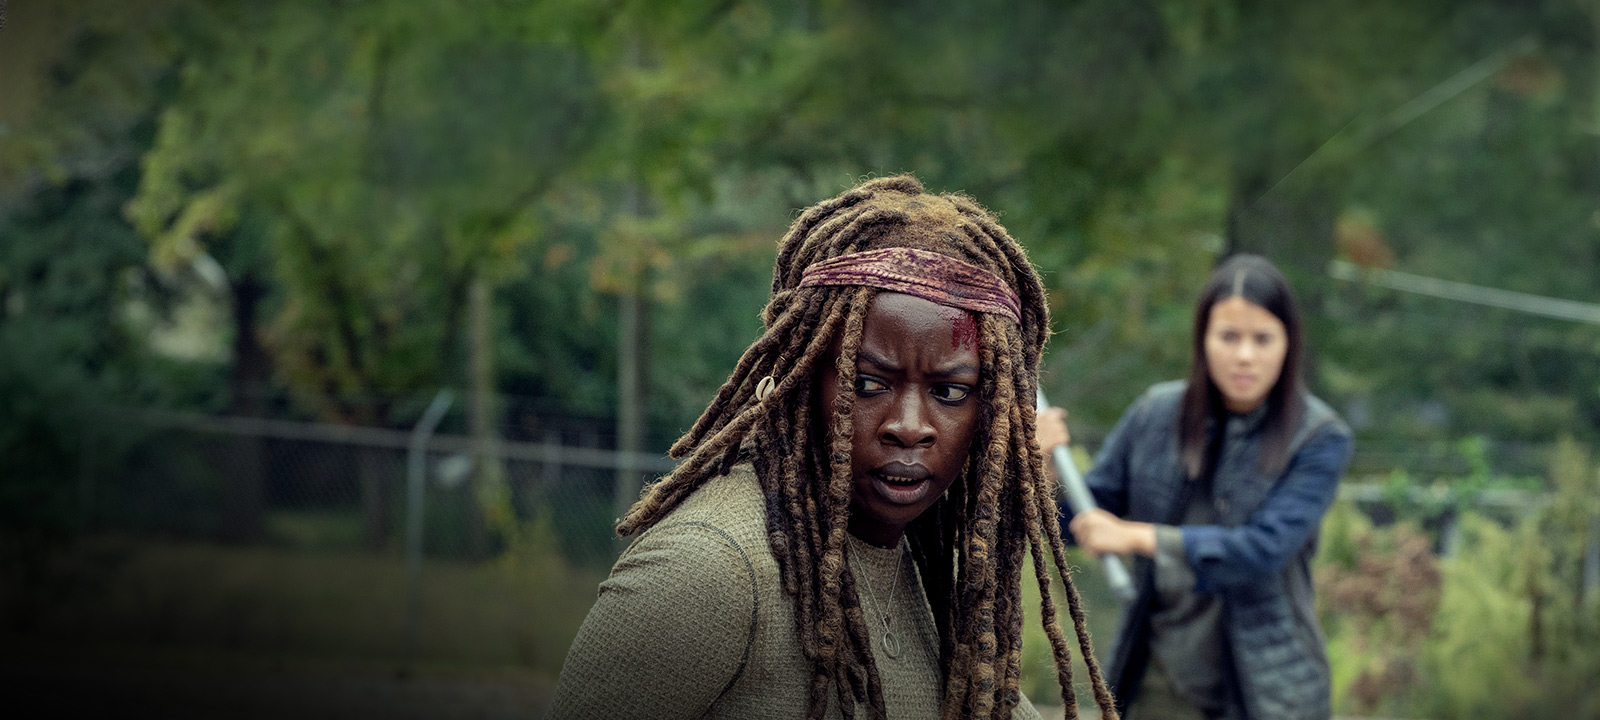 the-walking-dead-episode-914-michonne-gurira-post-800×600